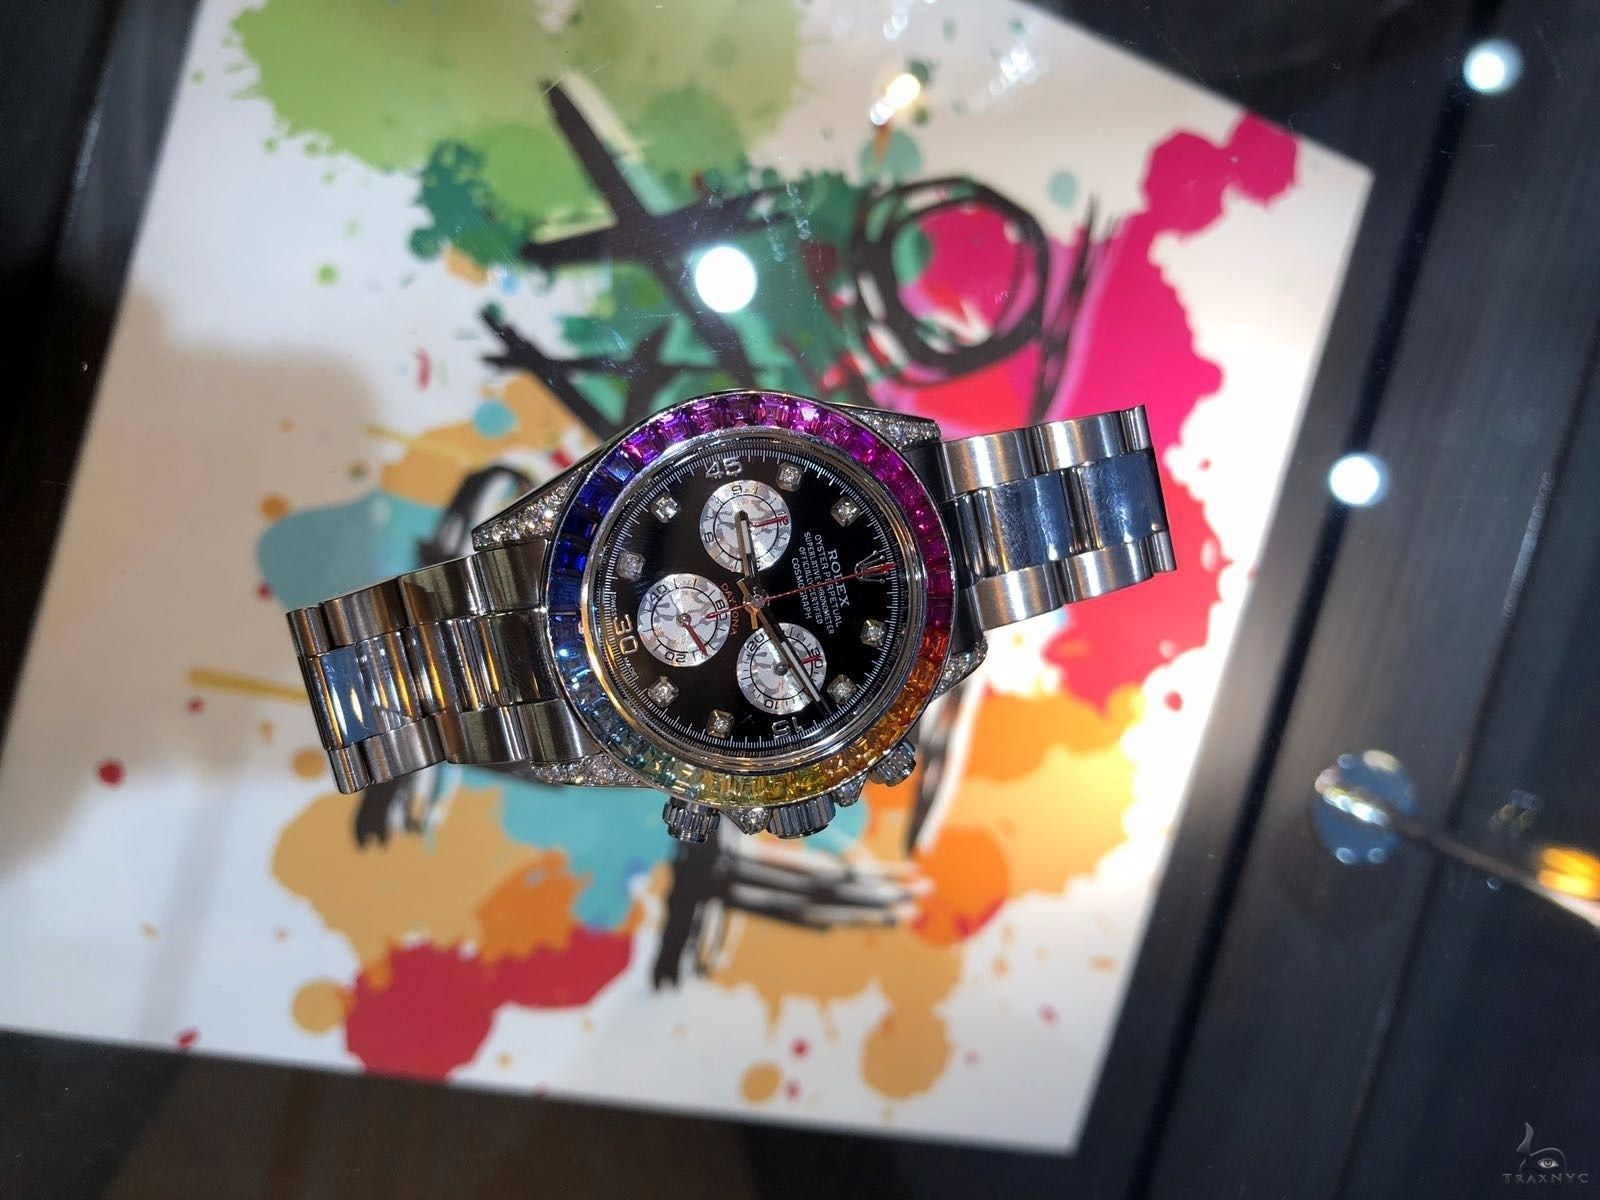 Rolex Oyster Perpetual Cosmograph Daytona Watch Diamond Rolex Watch Collection